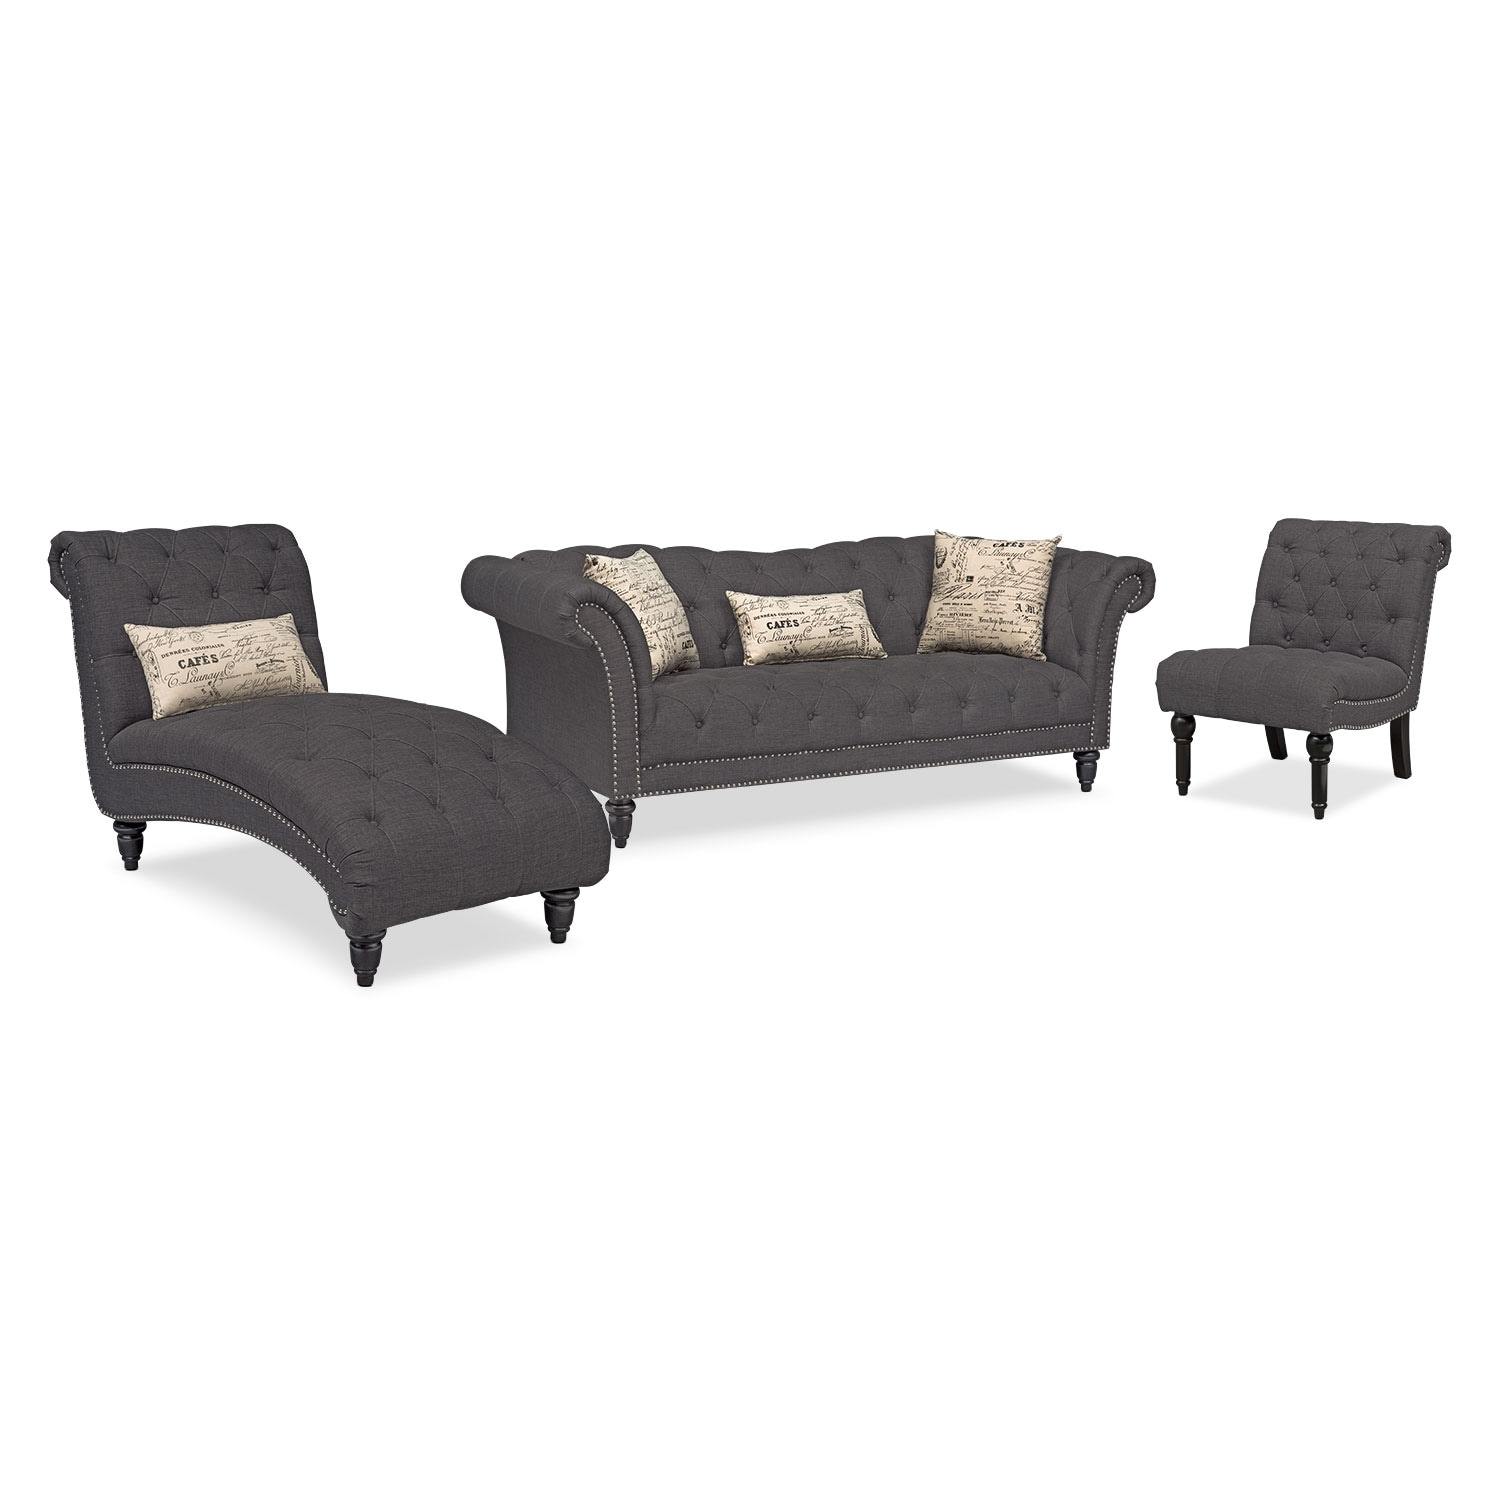 Marisol Sofa, Chaise and Armless Chair Set - Charcoal